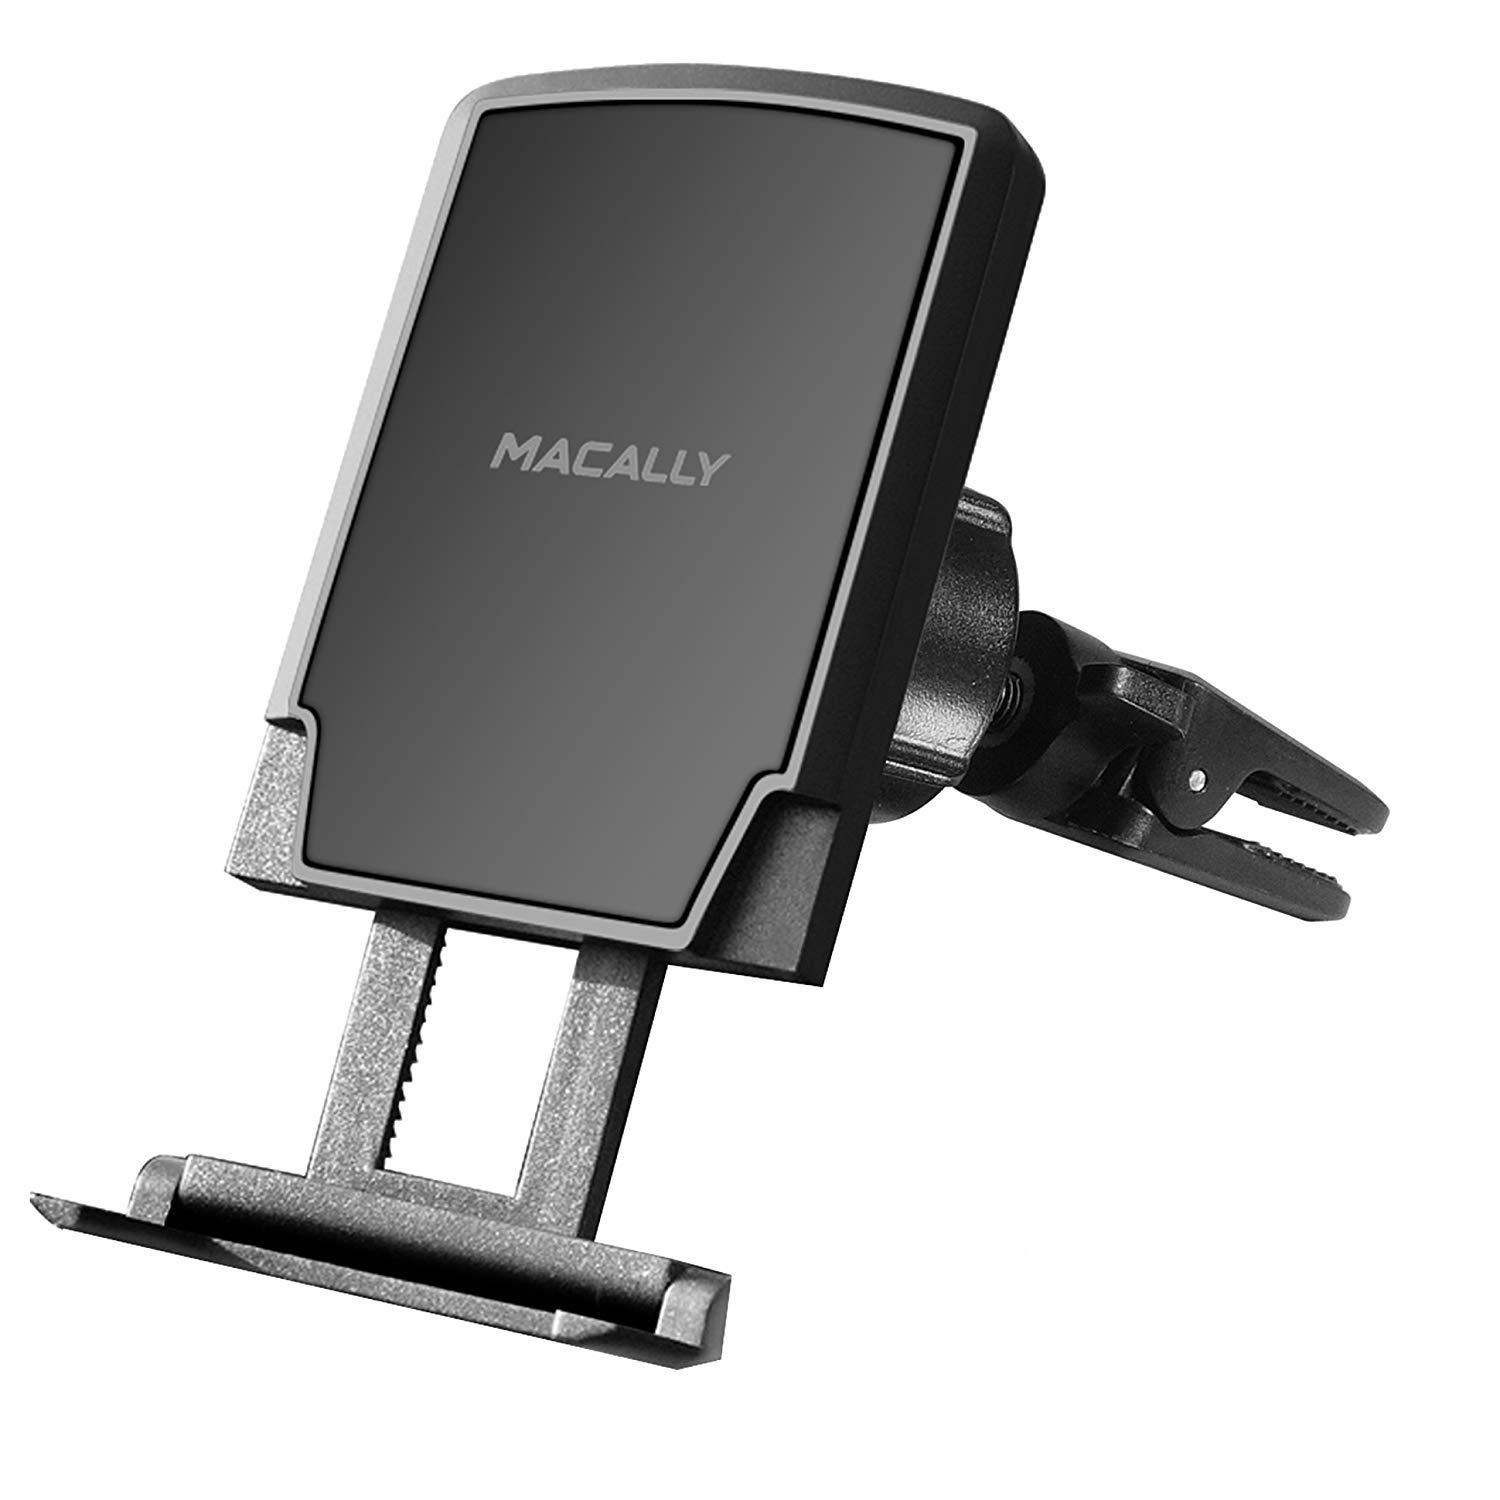 Macally Universal Magnetic Air Vent Mount Car Phone Holder with Super Strong Magnet & Foot Support for iPhone XS XS Max XR X 8 8 Plus 7 7+ 6s 6s+ 6 SE Samsung Galaxy S9 S9+ S8 Edge S7 Note 5- MVENTMAG